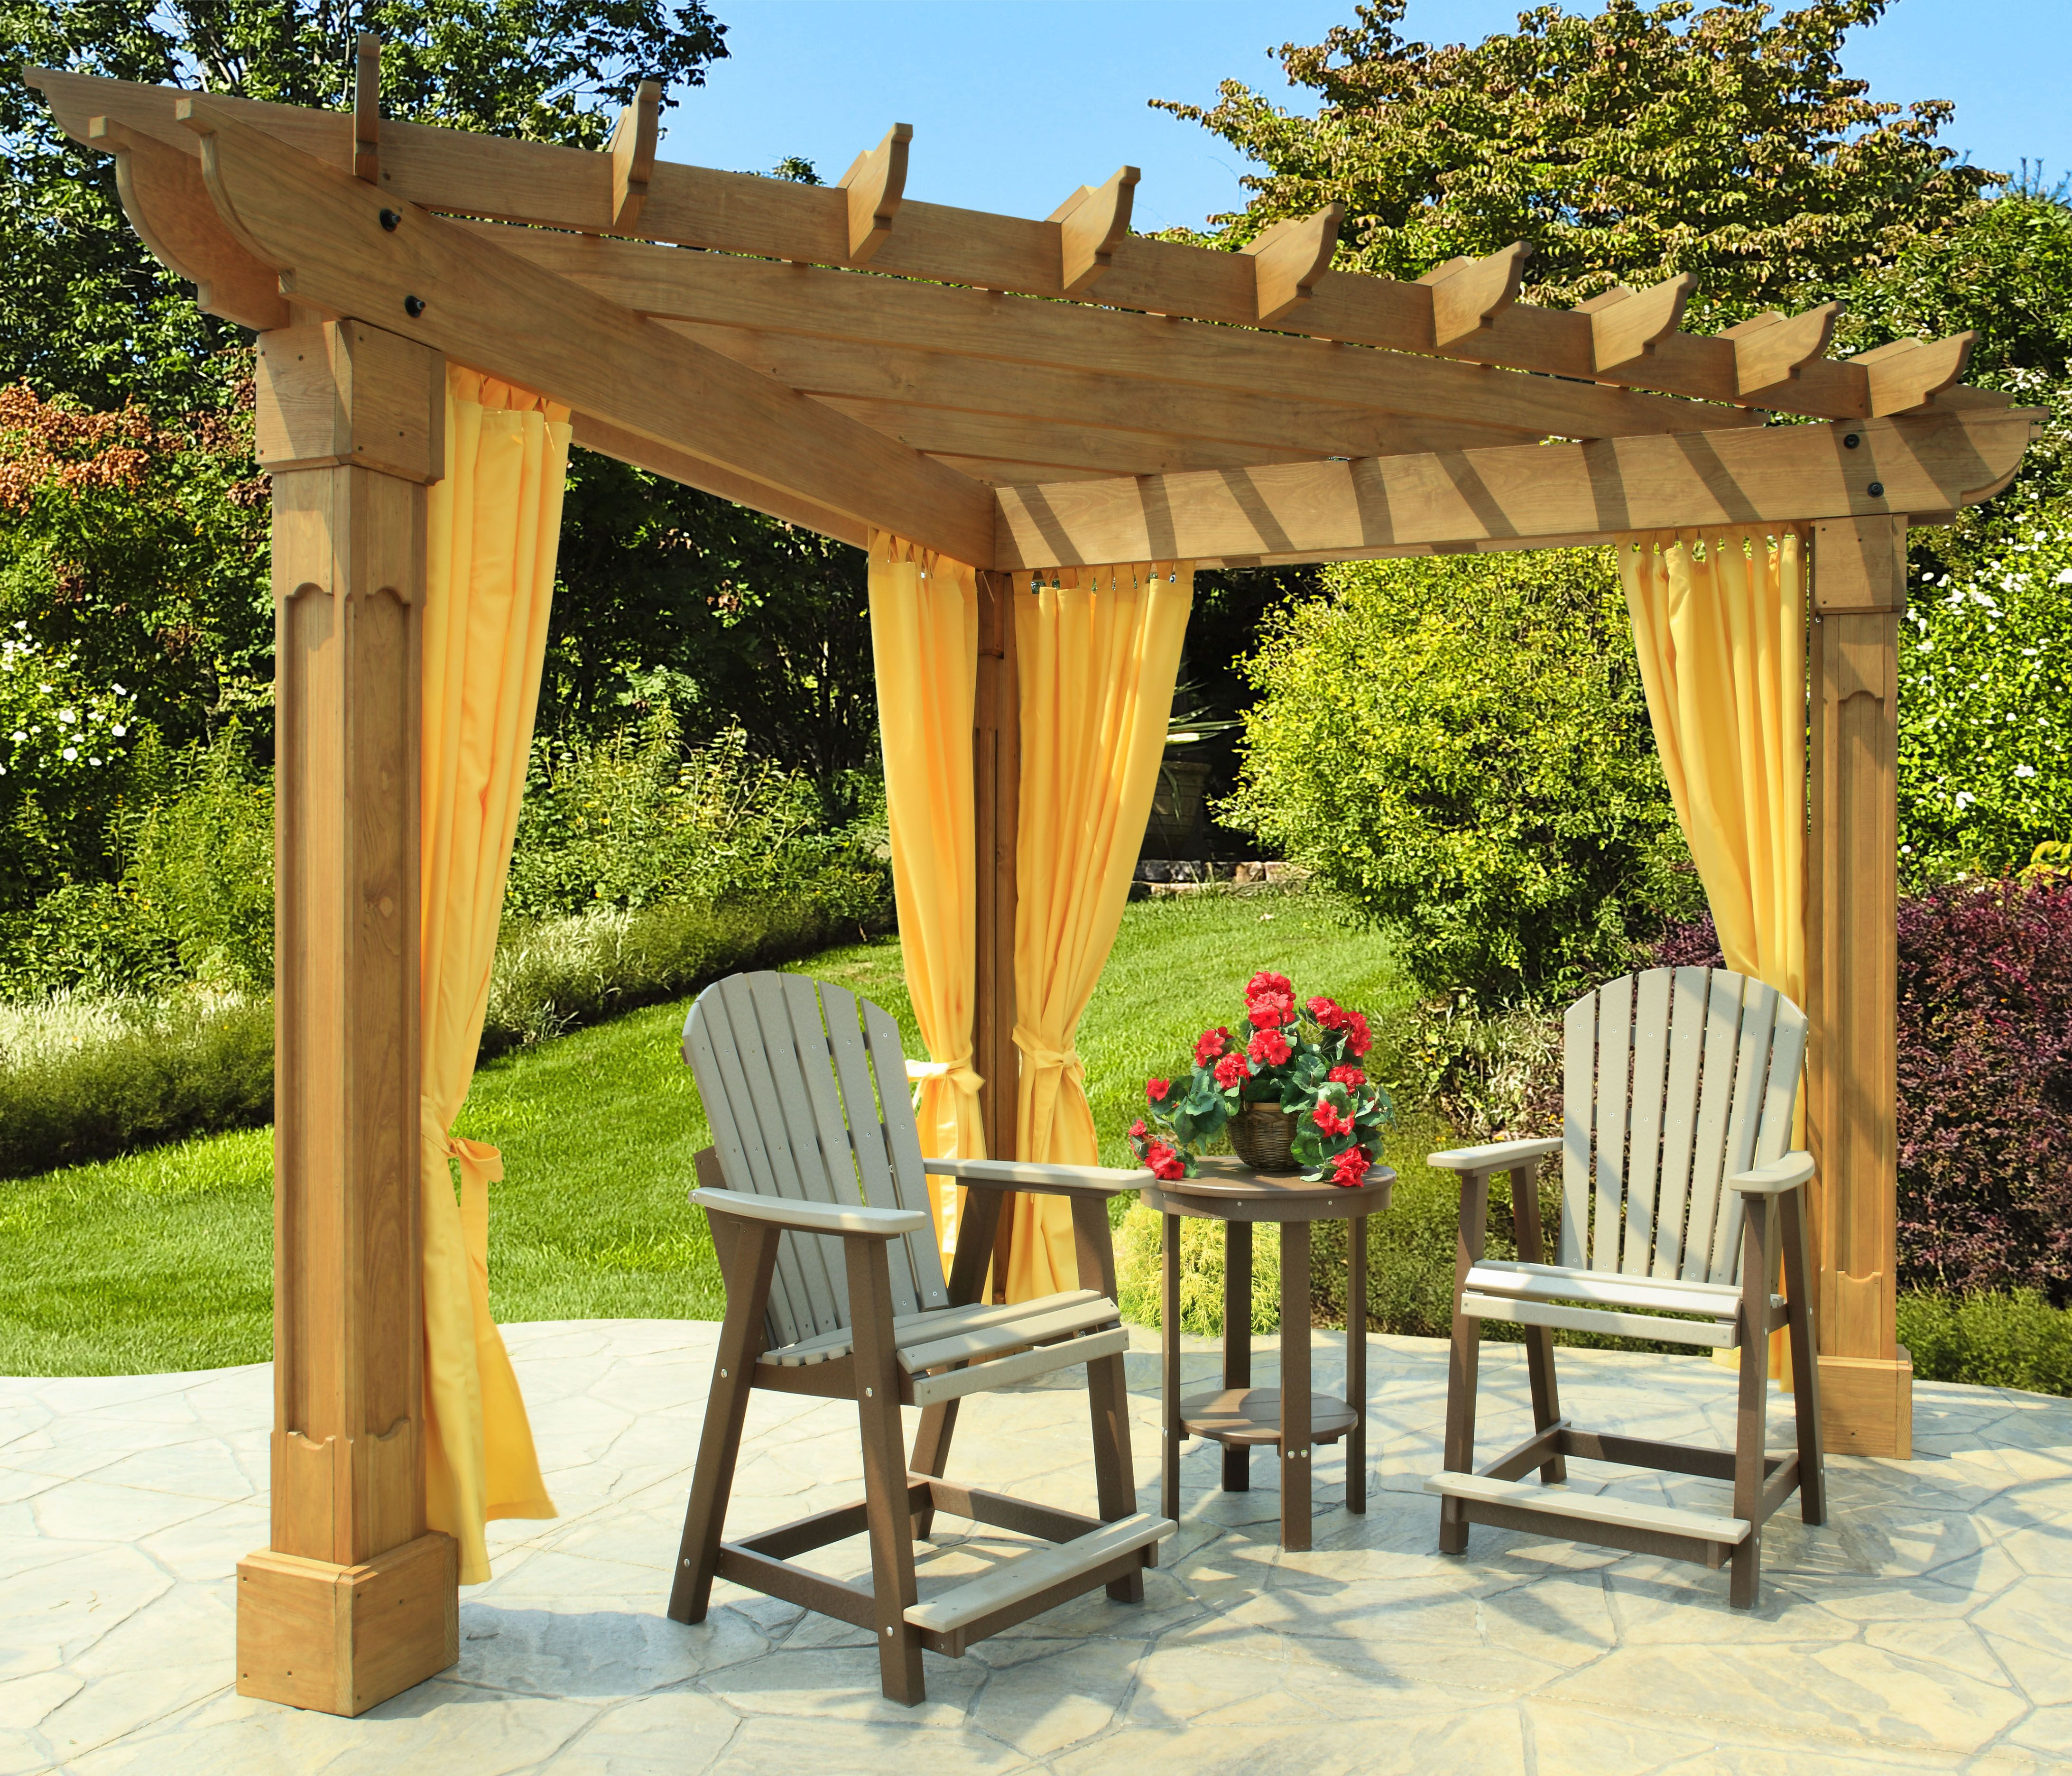 The Berlin Gardens Alcove pergola is made from treated